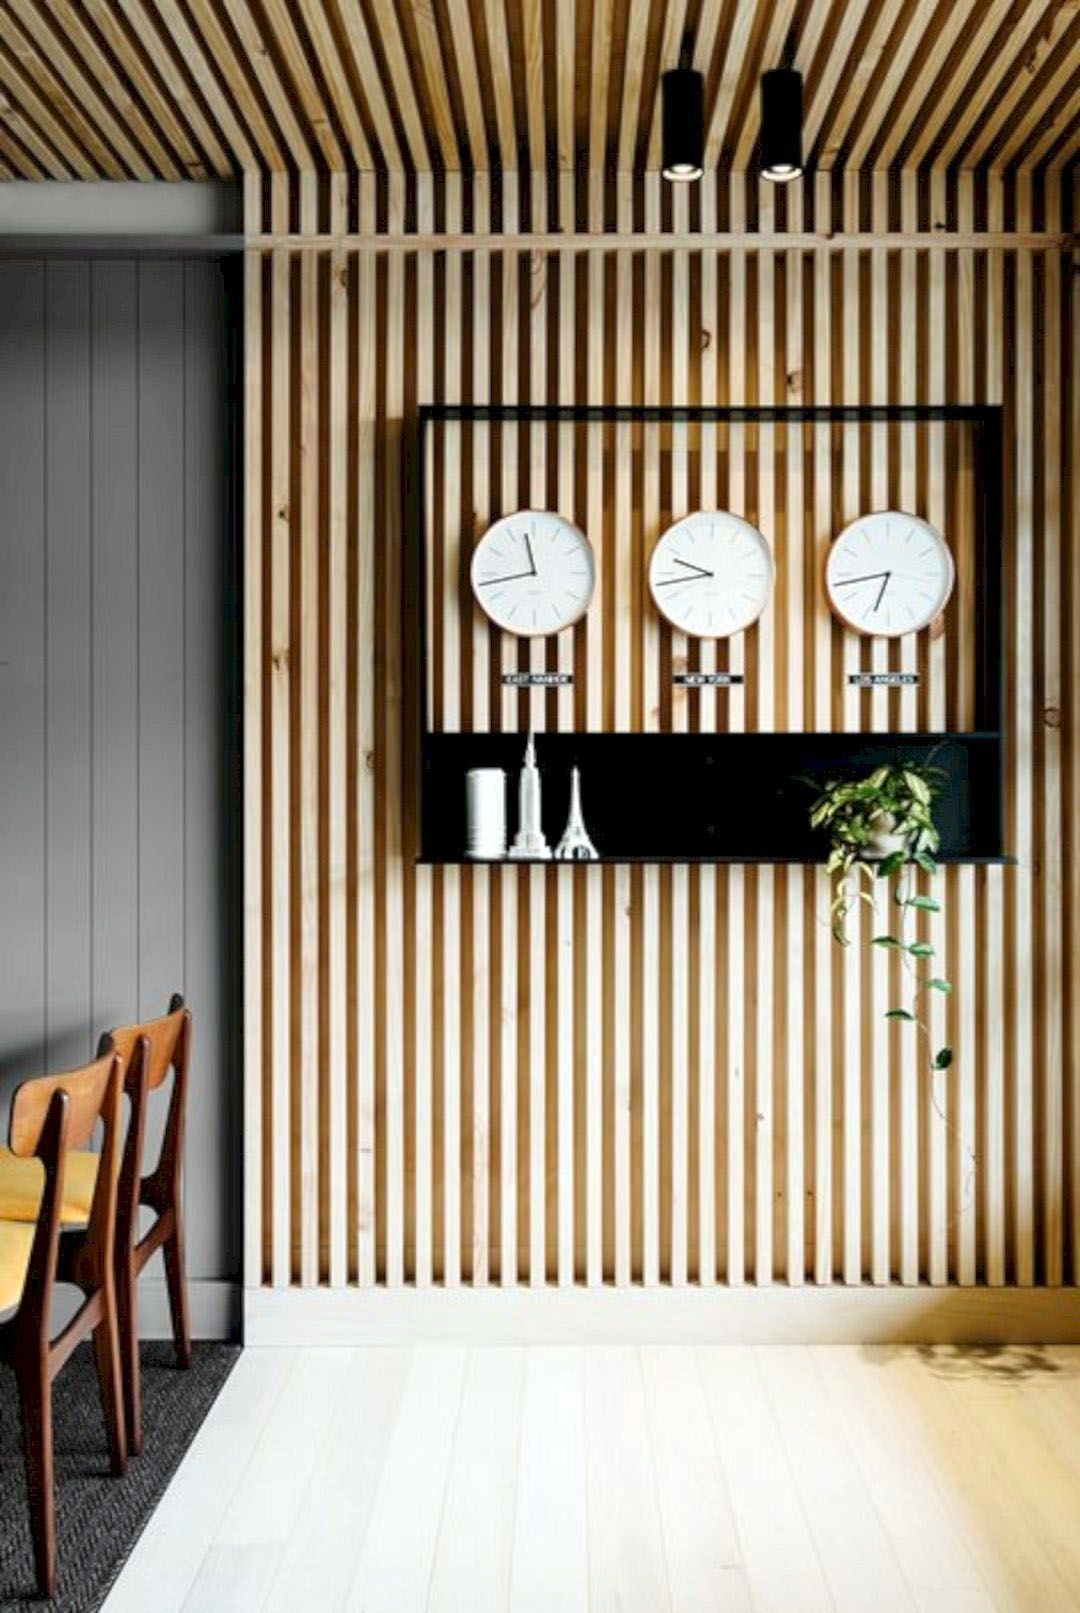 Cool And Contemporary Wood Paneling Architecture Only In Home Design Site Wood Slat Wall Interior Design Interior